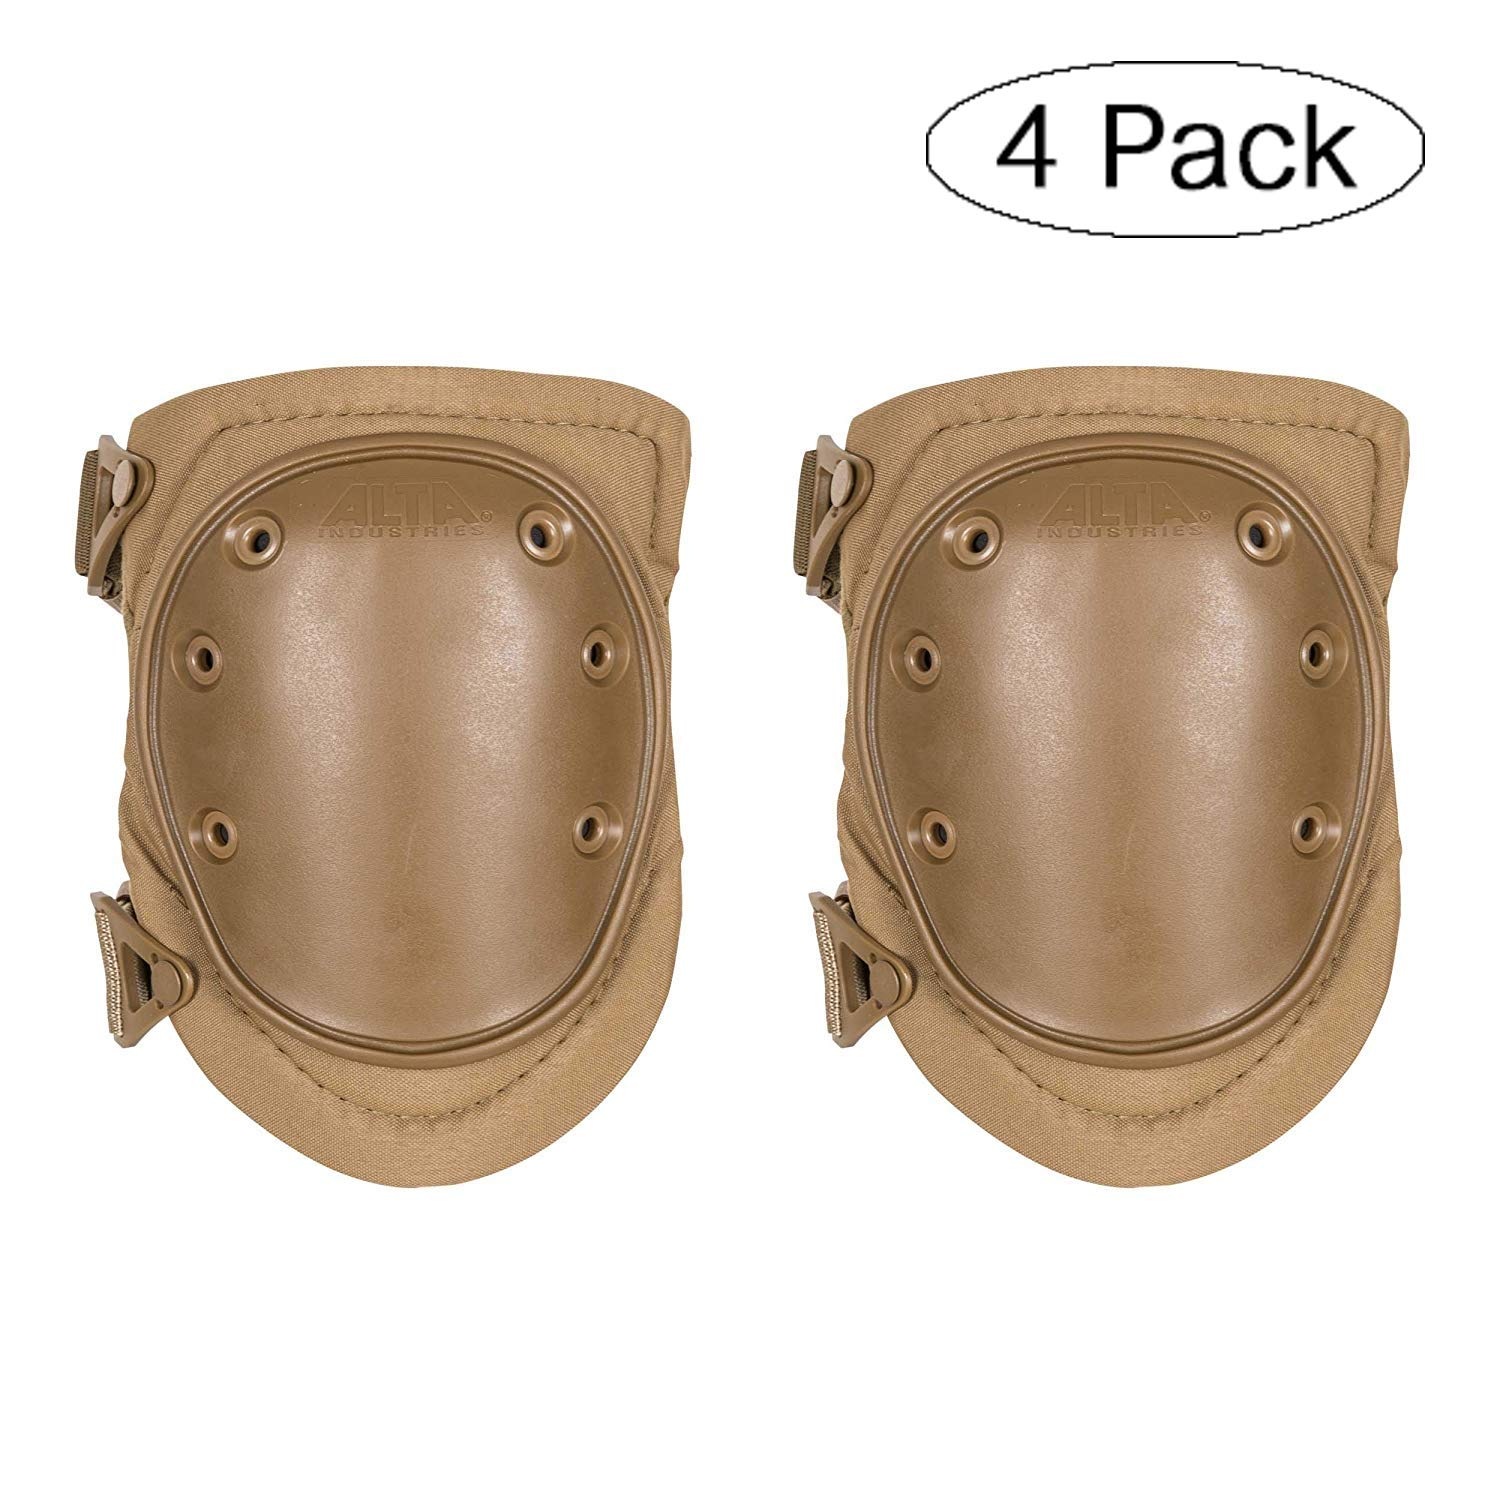 Top 10 Best Tactical Knee Pads (2020 Reviews & Buying Guide) 4